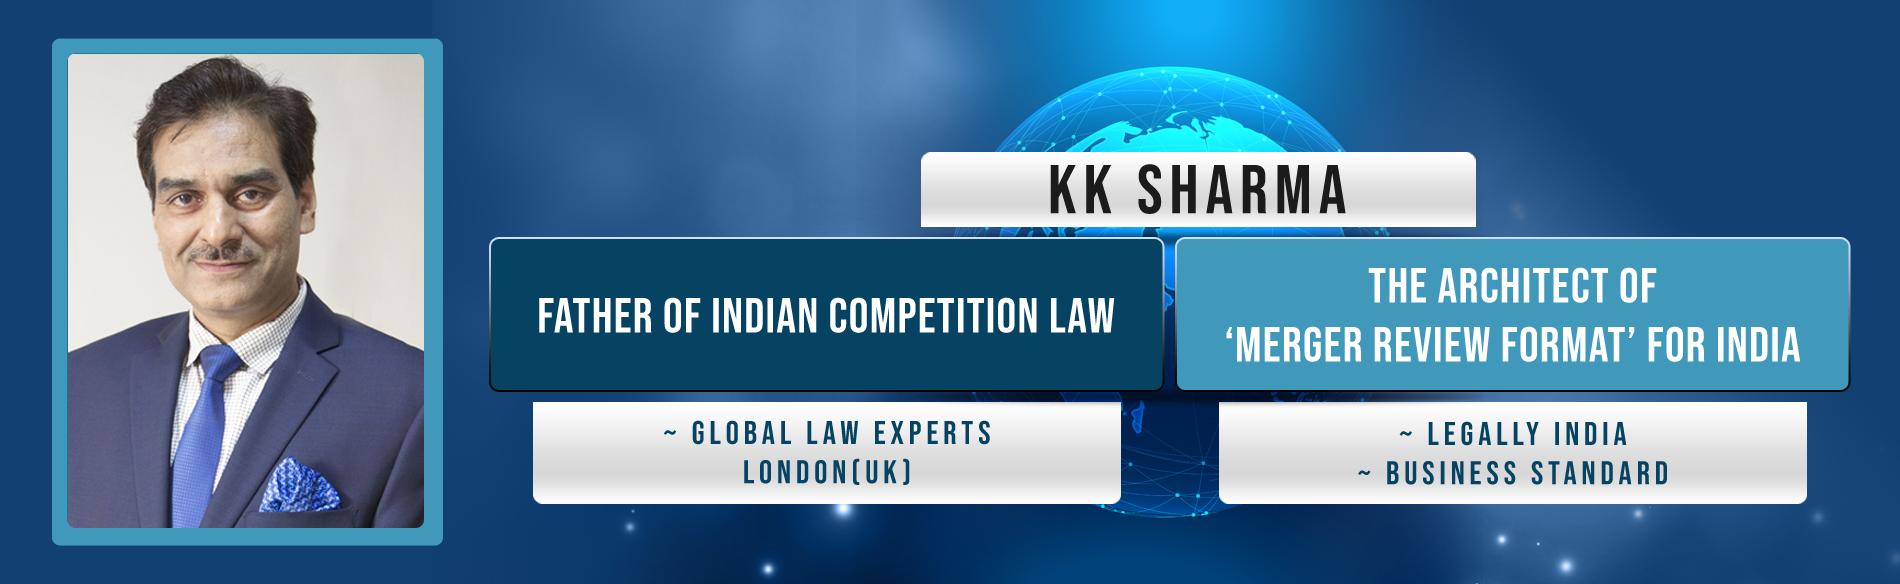 Father of indian competition law, global law experts, london, the architect of 'merger review format' for india, legally india, business standard